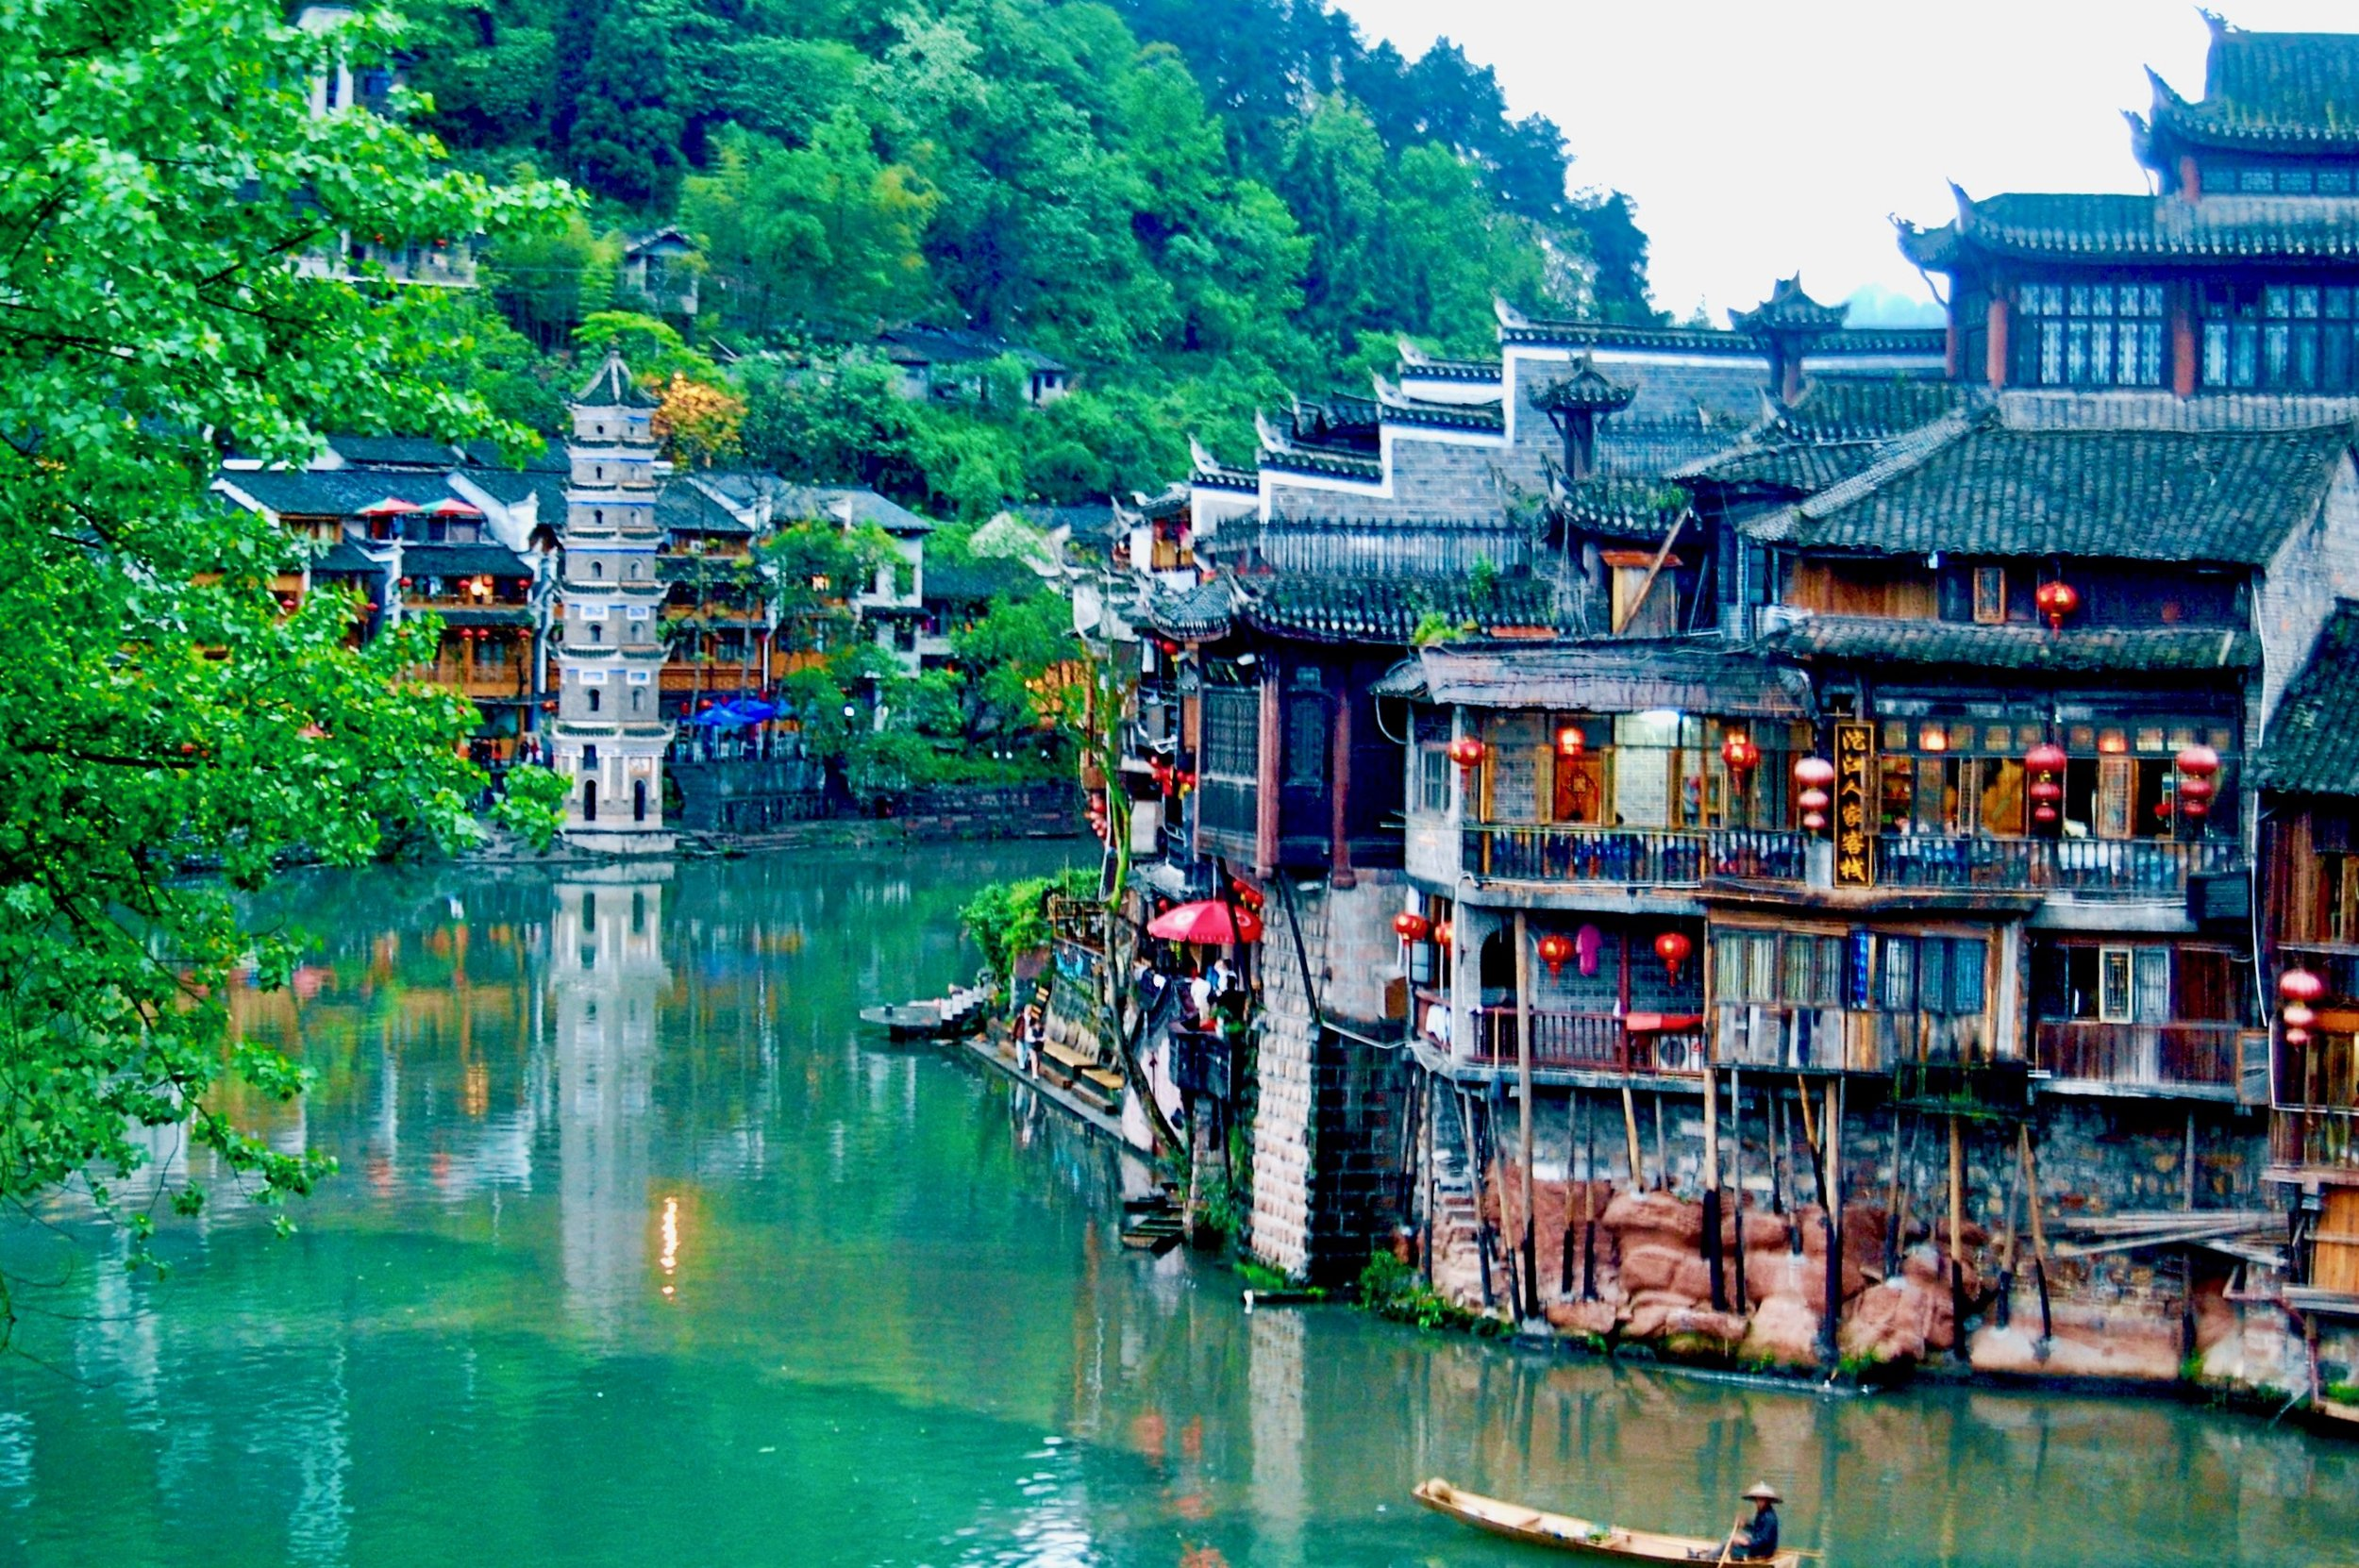 Lazy bend in the Tuojiang River as it meanders its way through the ancient city of Fenghuang (Hunan, China)